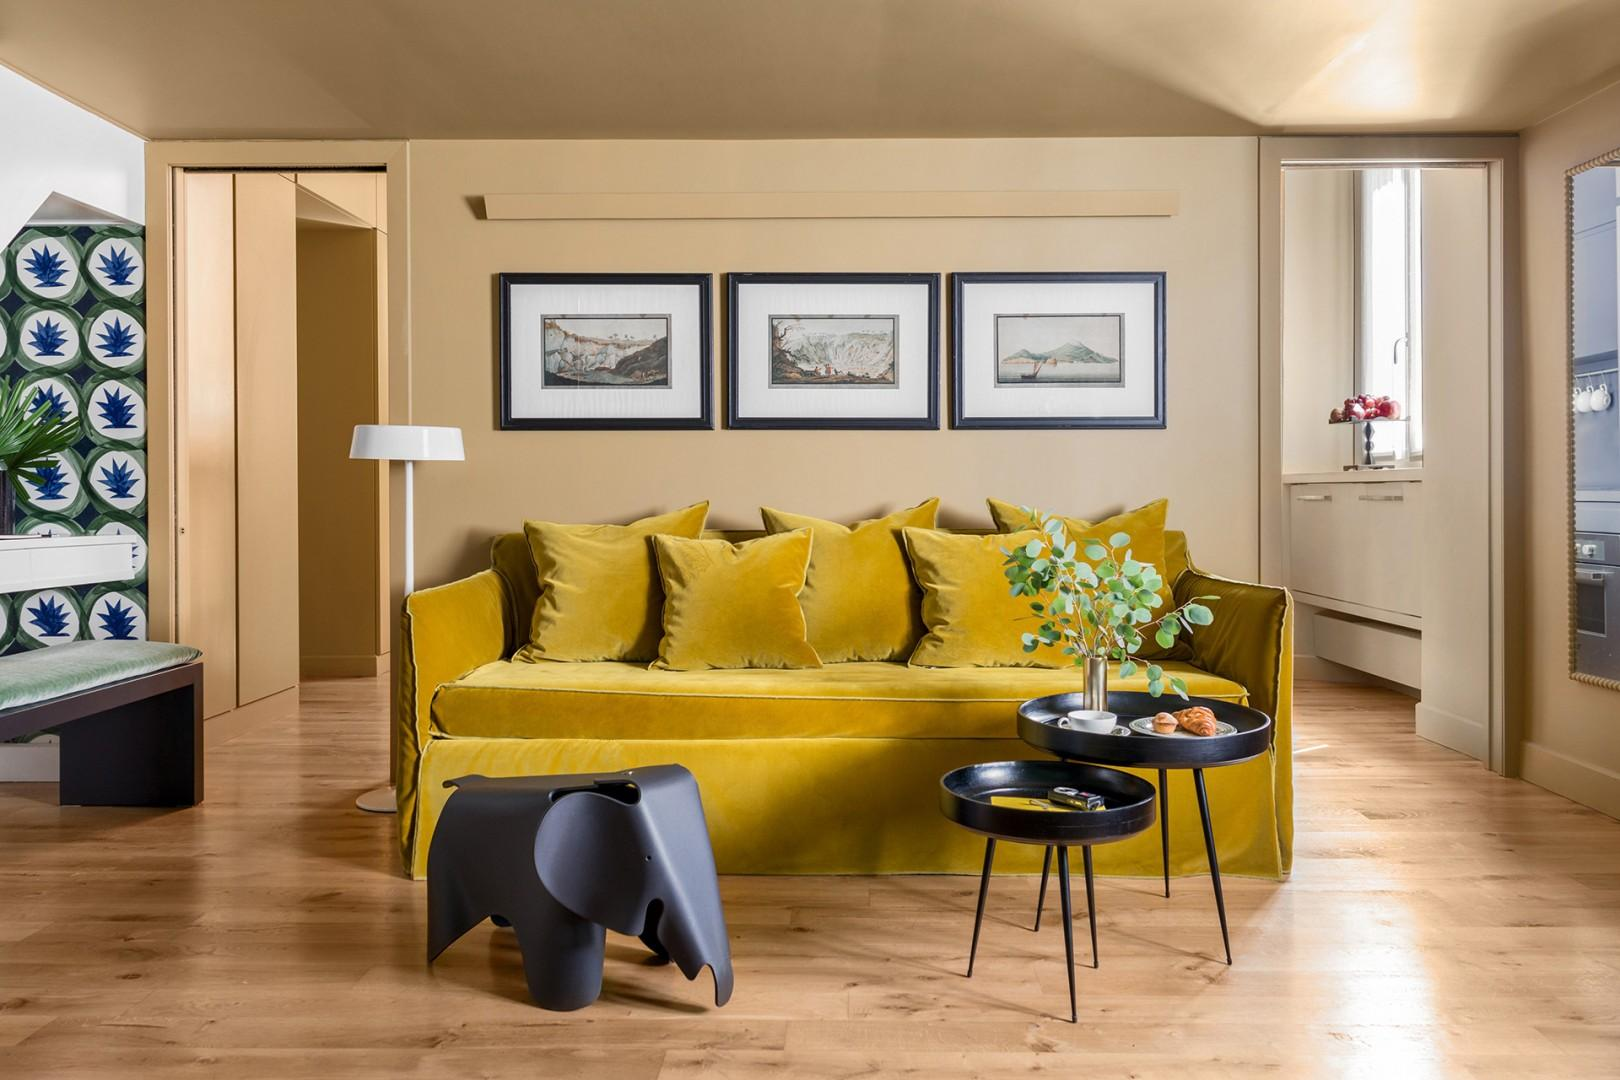 Princess Paolina apartment offers elegant accommodation in an excellent location.